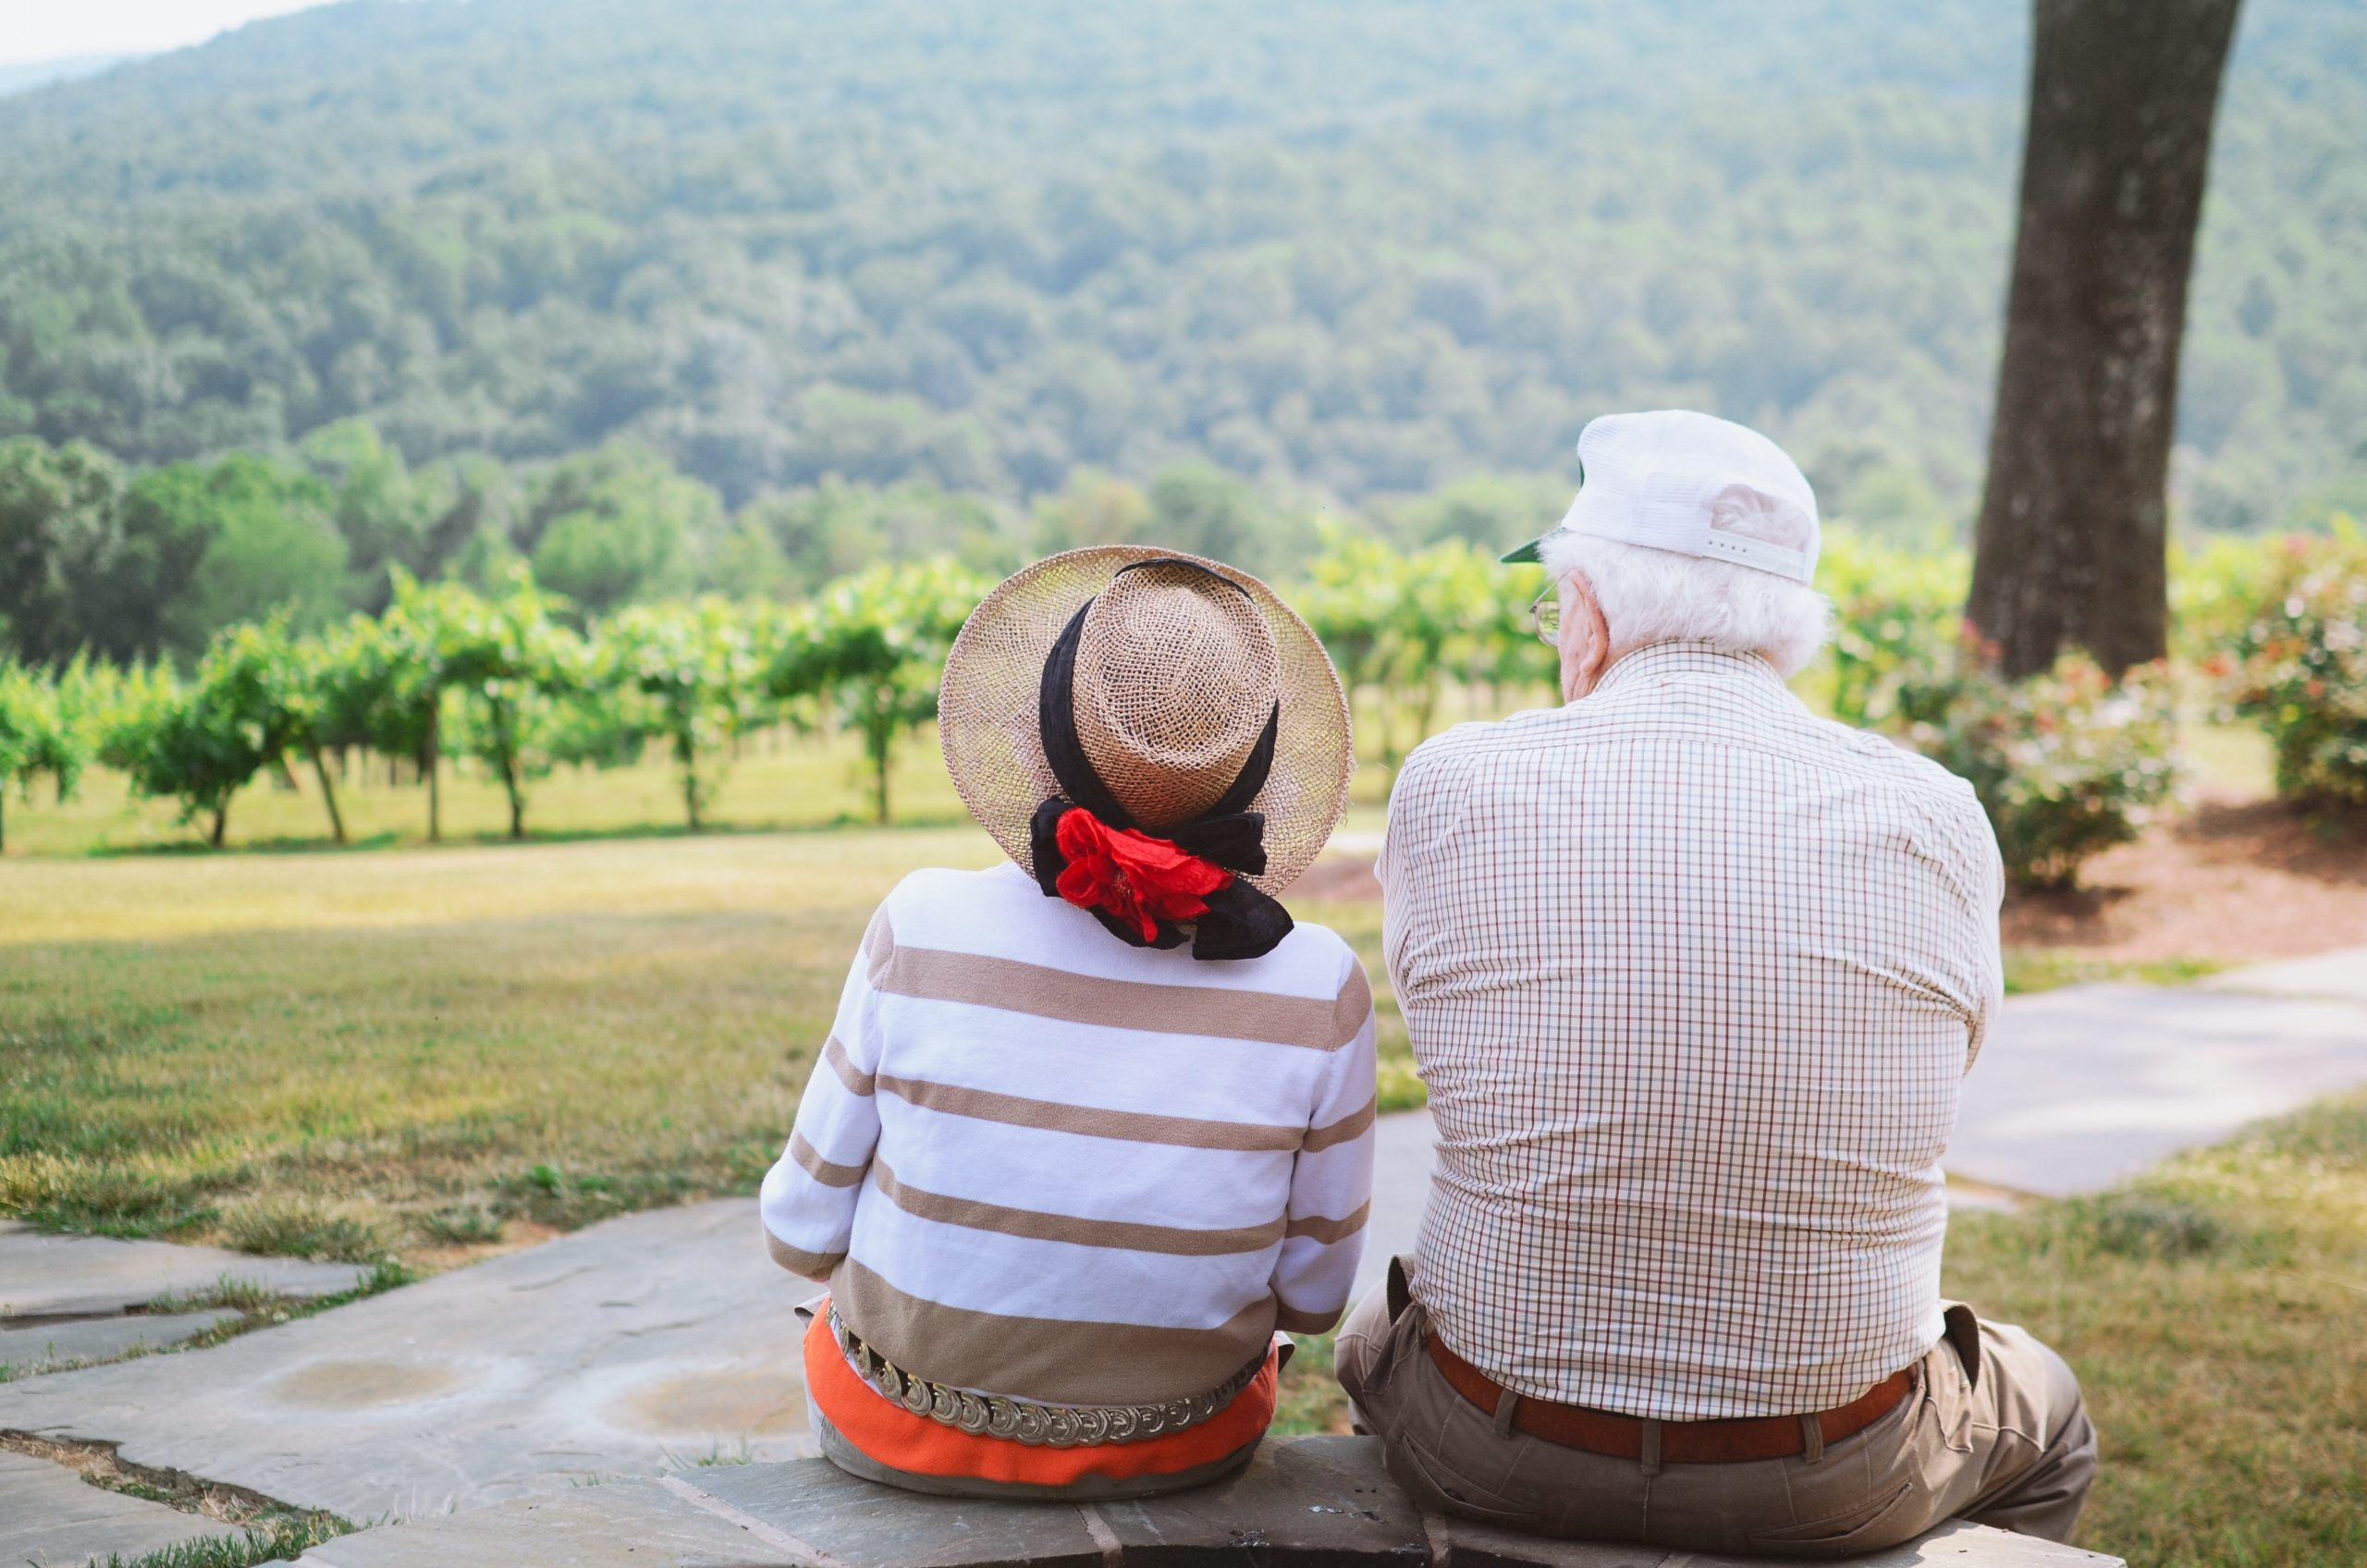 The backs of an elderly couple looking out across a tree filled landscape